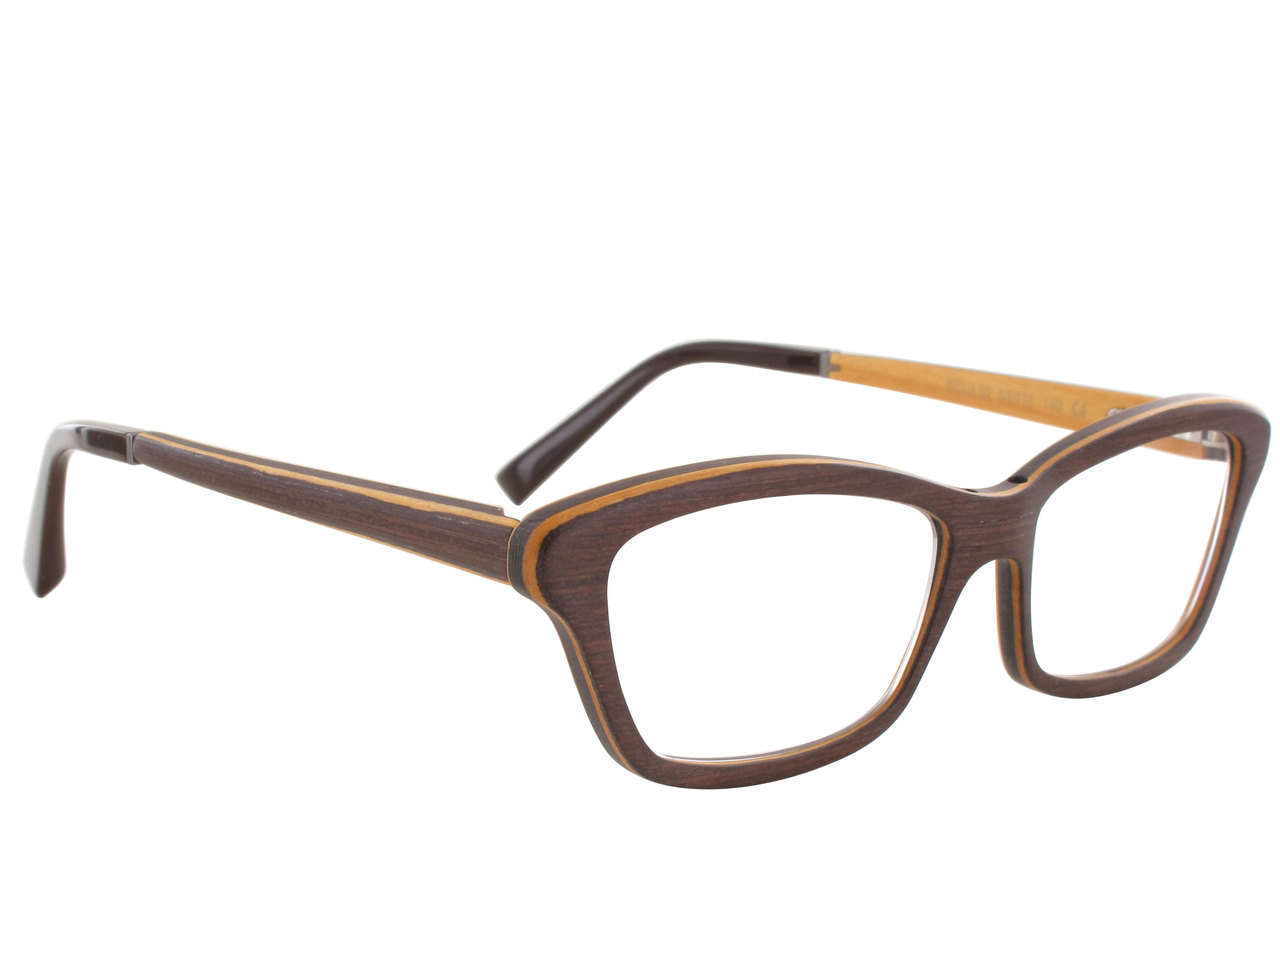 Lunettes en bois Gold and Wood Ecla 02 Taille 53 - 15 Gold   Wood ... 2f541716c388